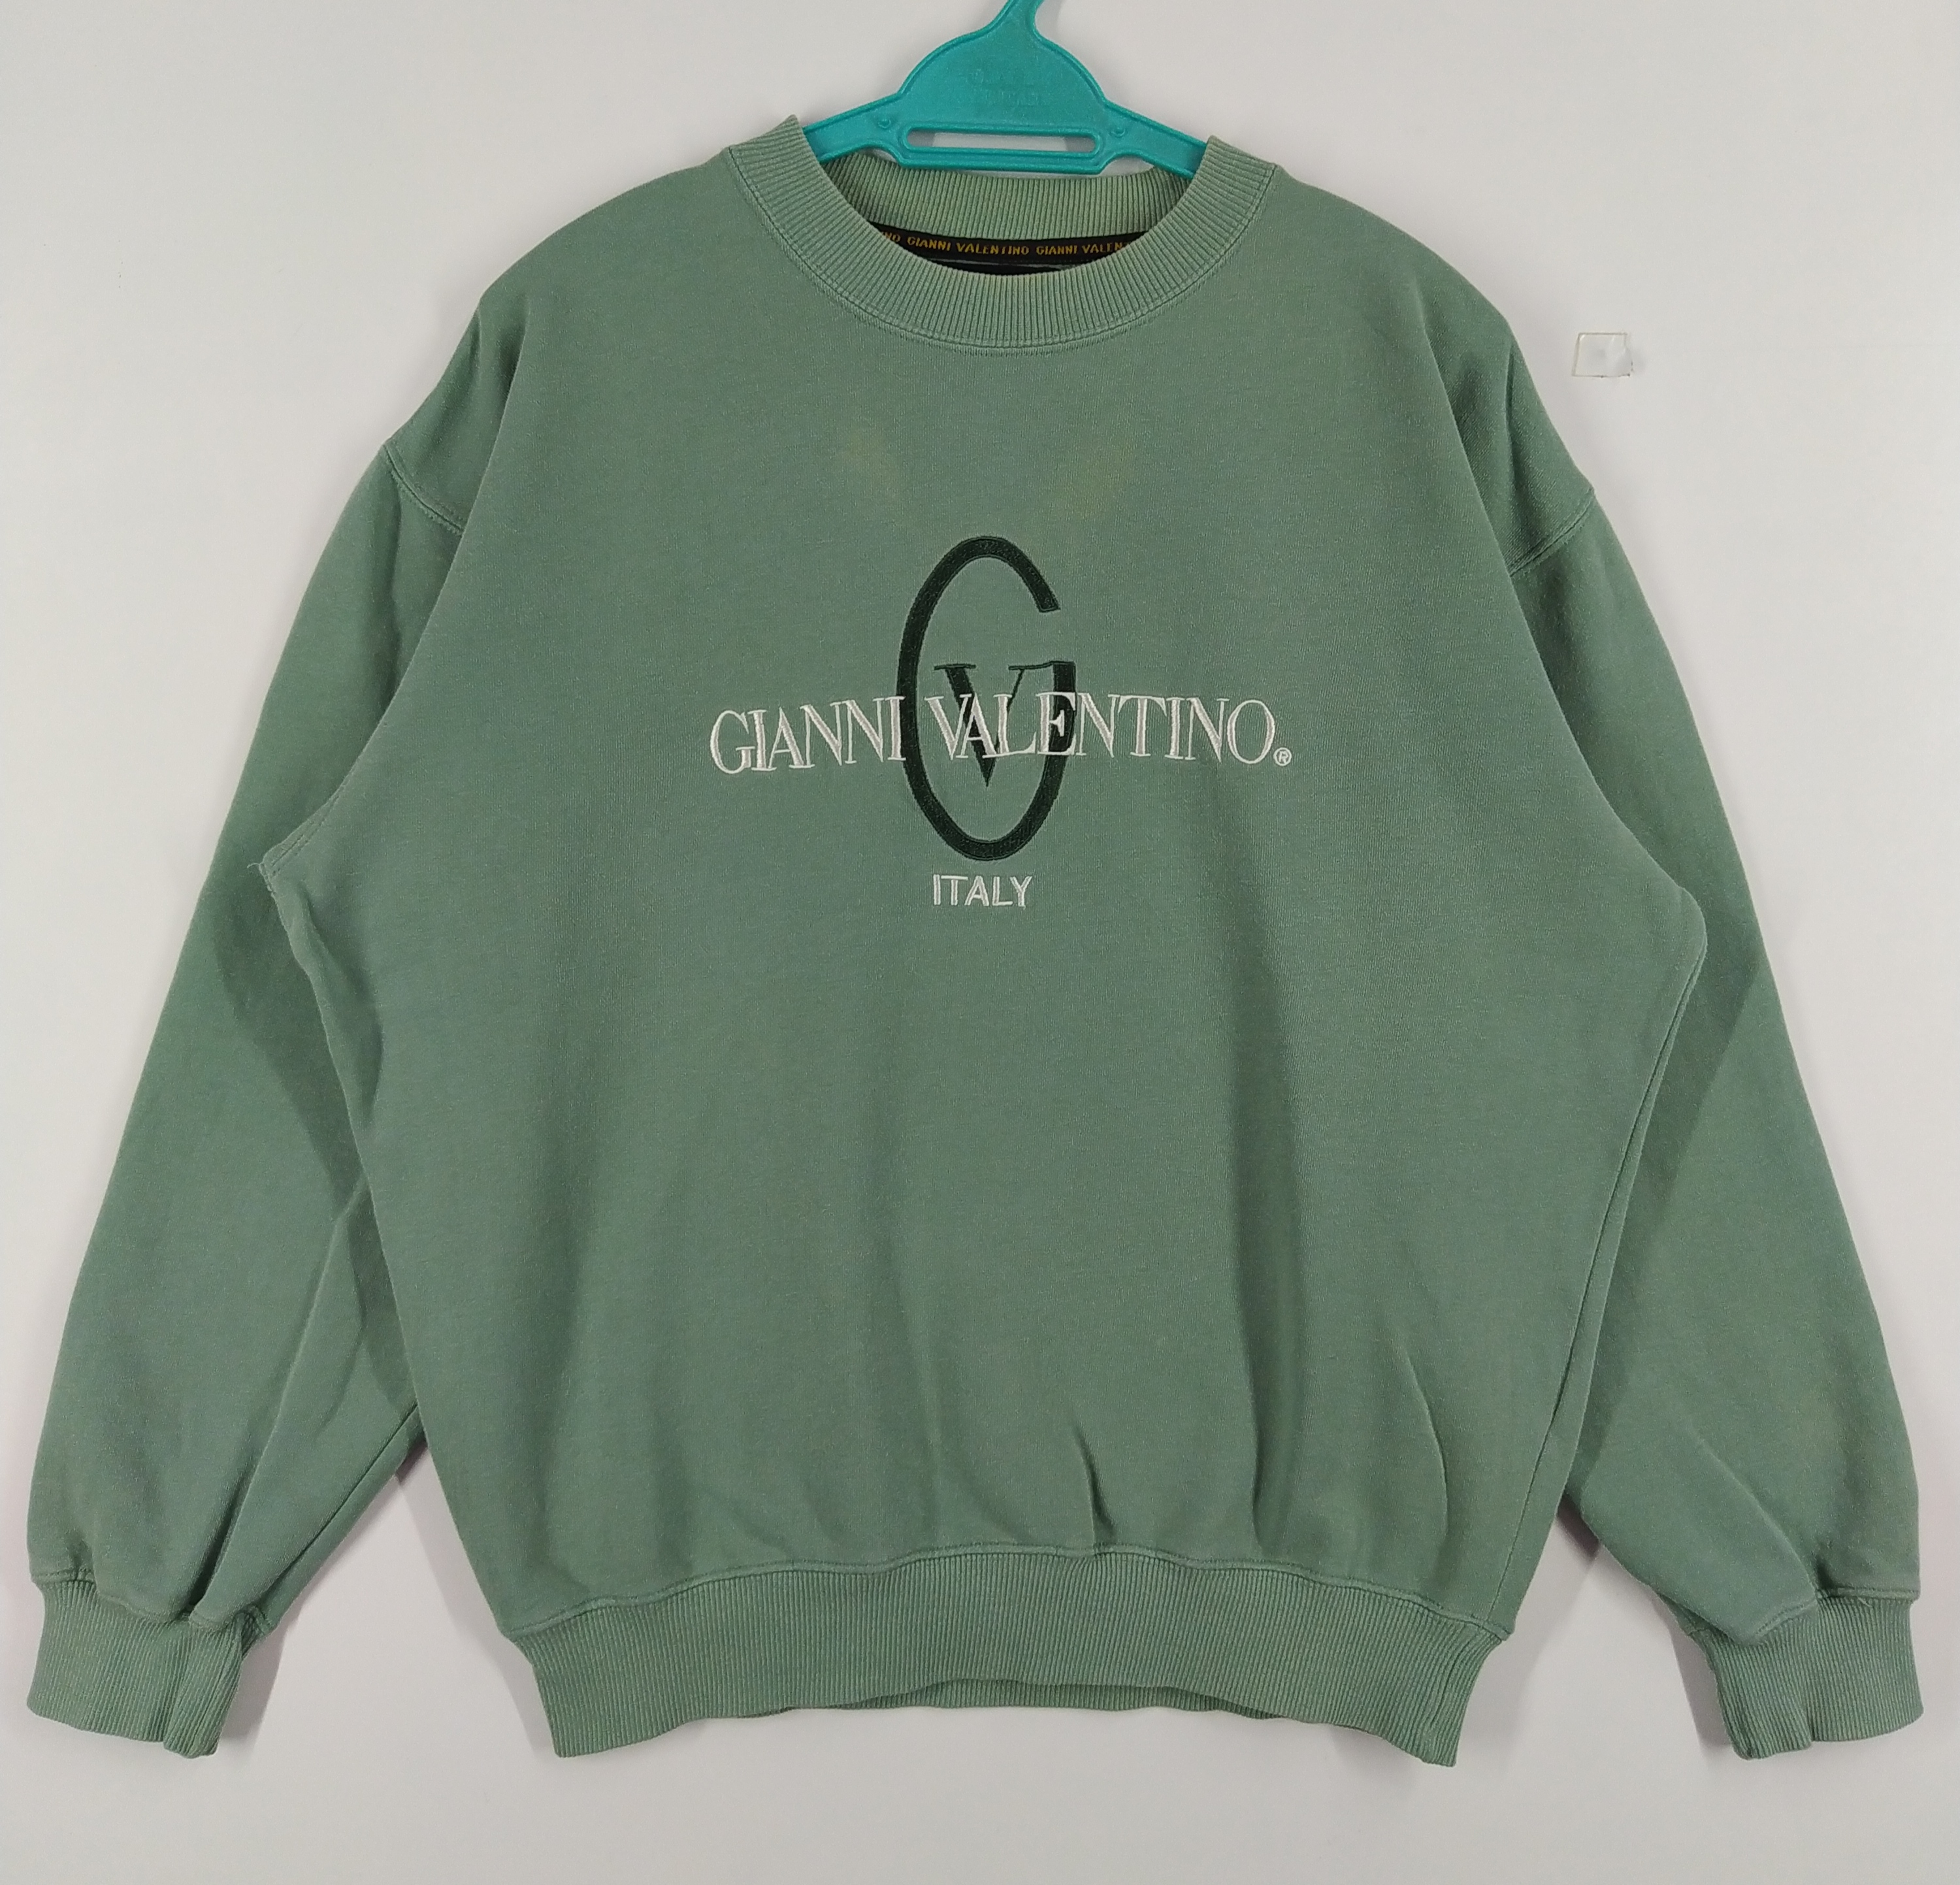 Vintage Gianni Valentino spellout embroidered green color size L